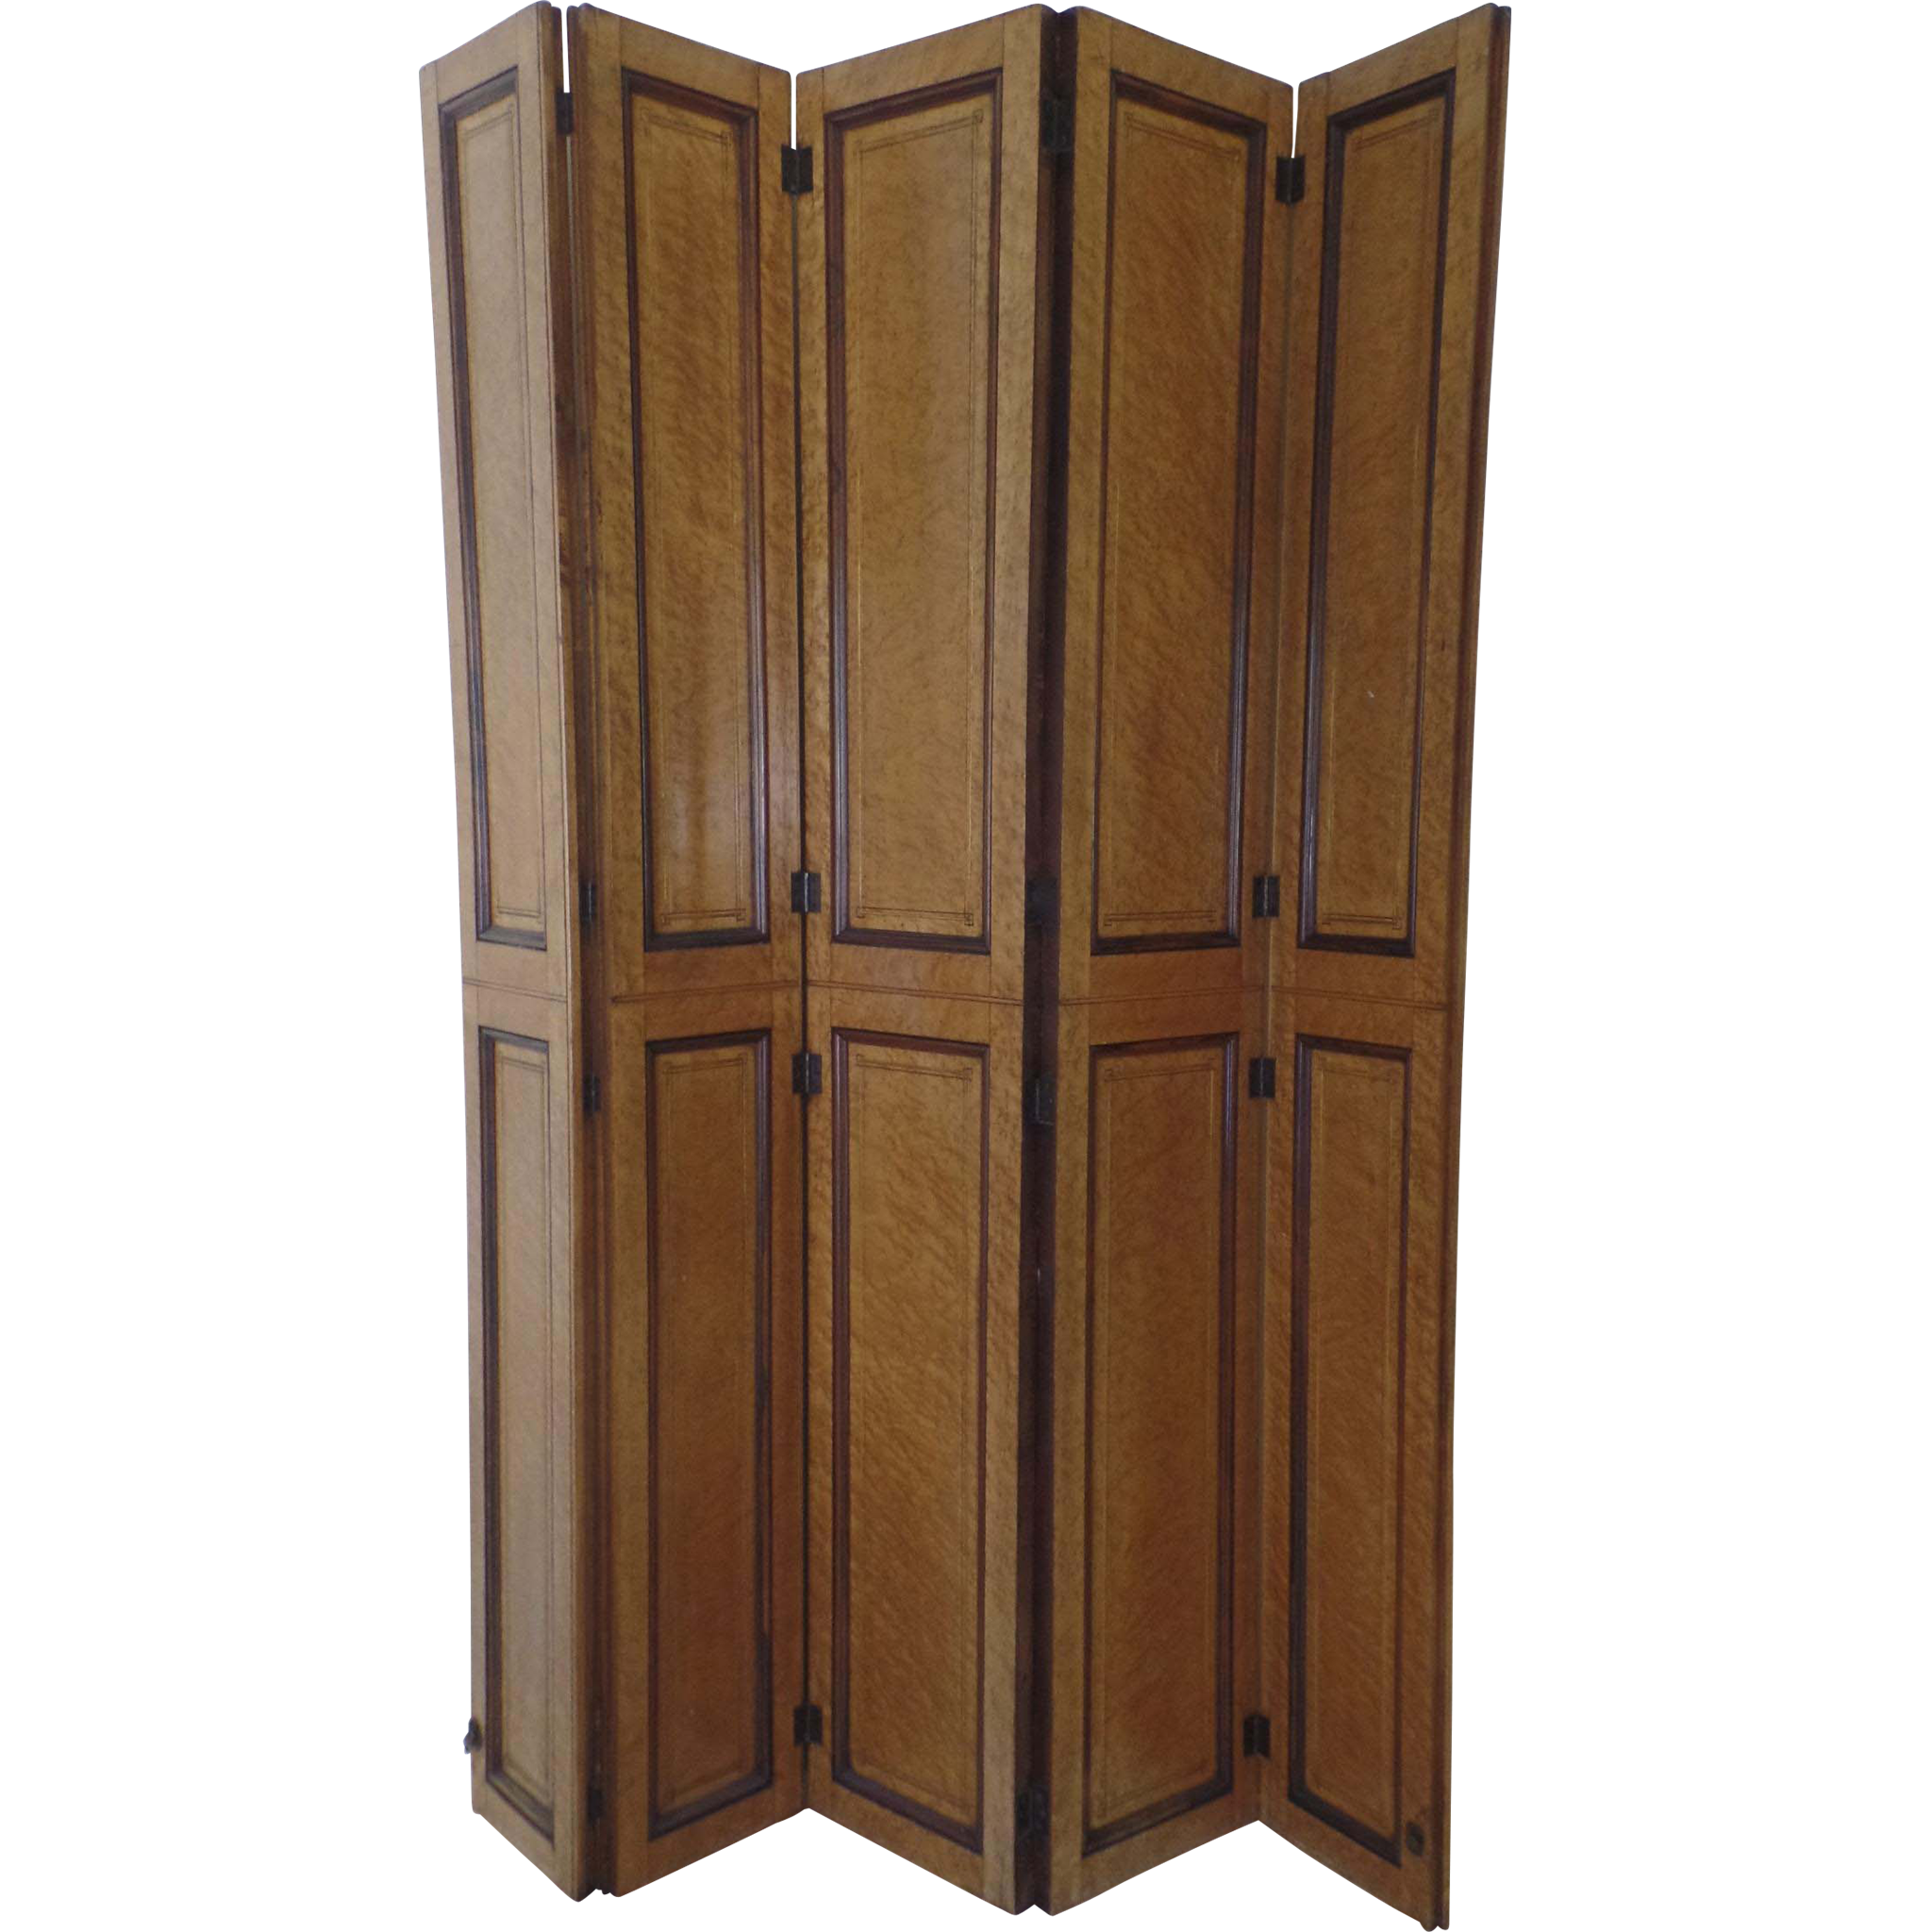 Https Www Rubylane Com Item 741898 Wx2e450 Birdx27s Eye Maple Hinged Screen Room